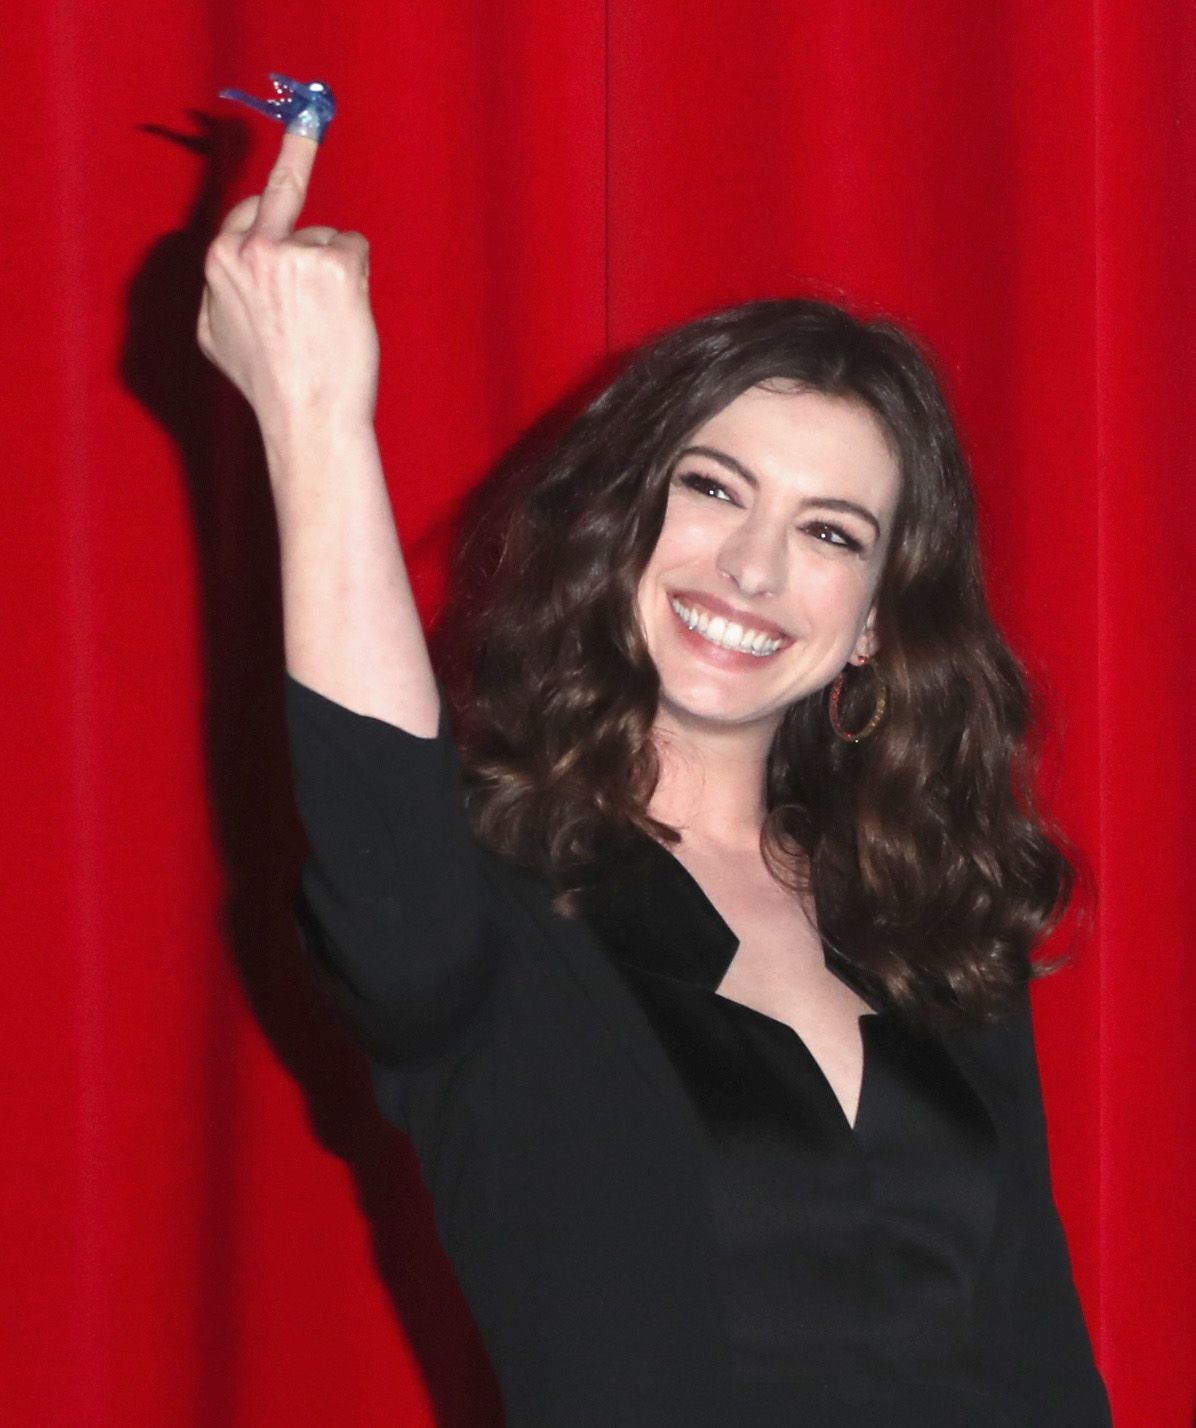 Anne Hathaway People: Anne Hathaway's Love-hate-redemption Publicity Cycle Is A